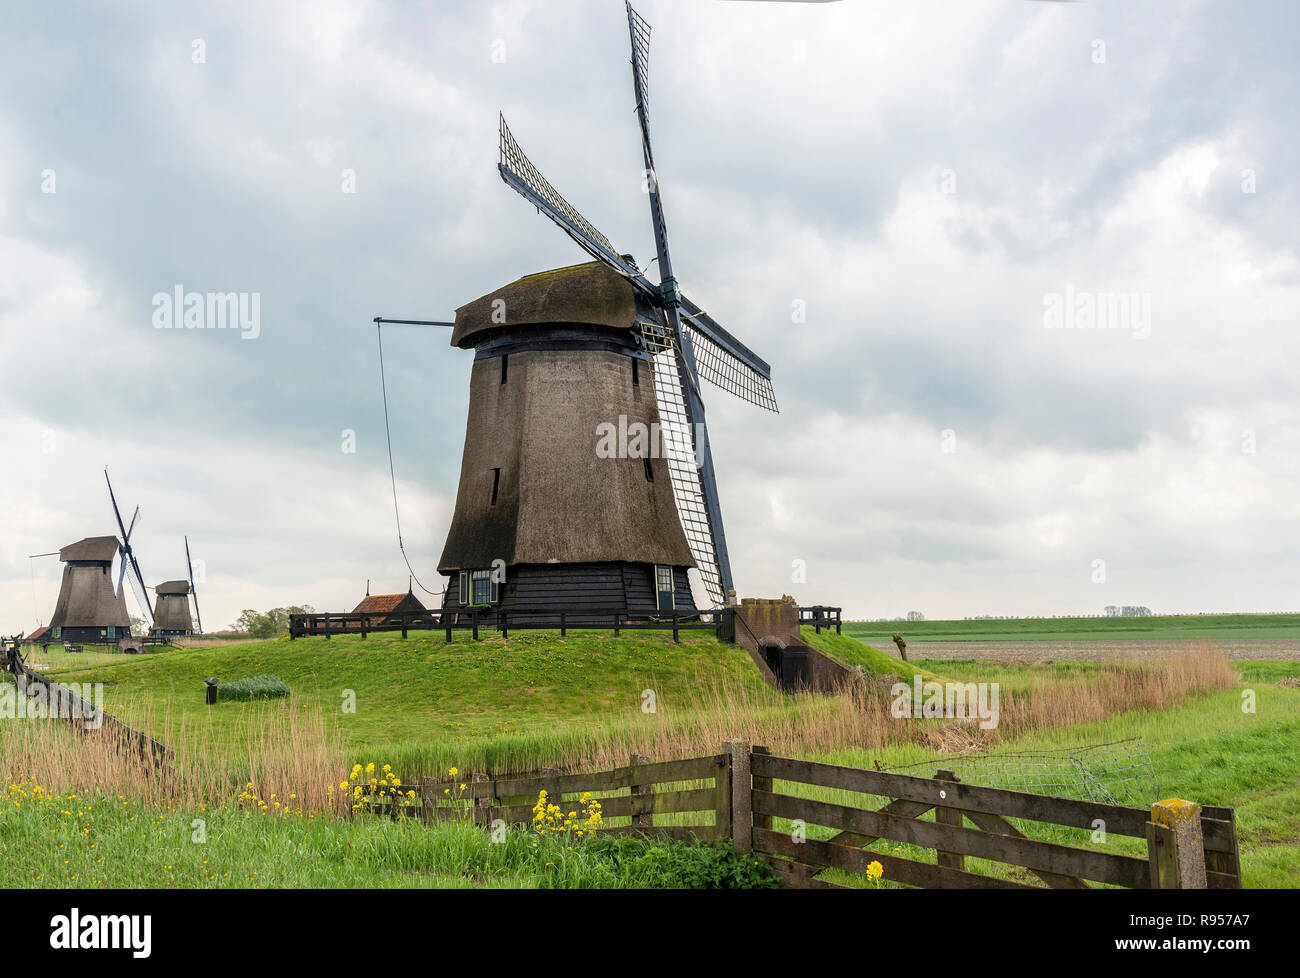 The Schermerhorn Museum Mill in a row of three windmills on a blustery cloudy day at Schermerhorn, North Holland, The Netherlands - Stock Image